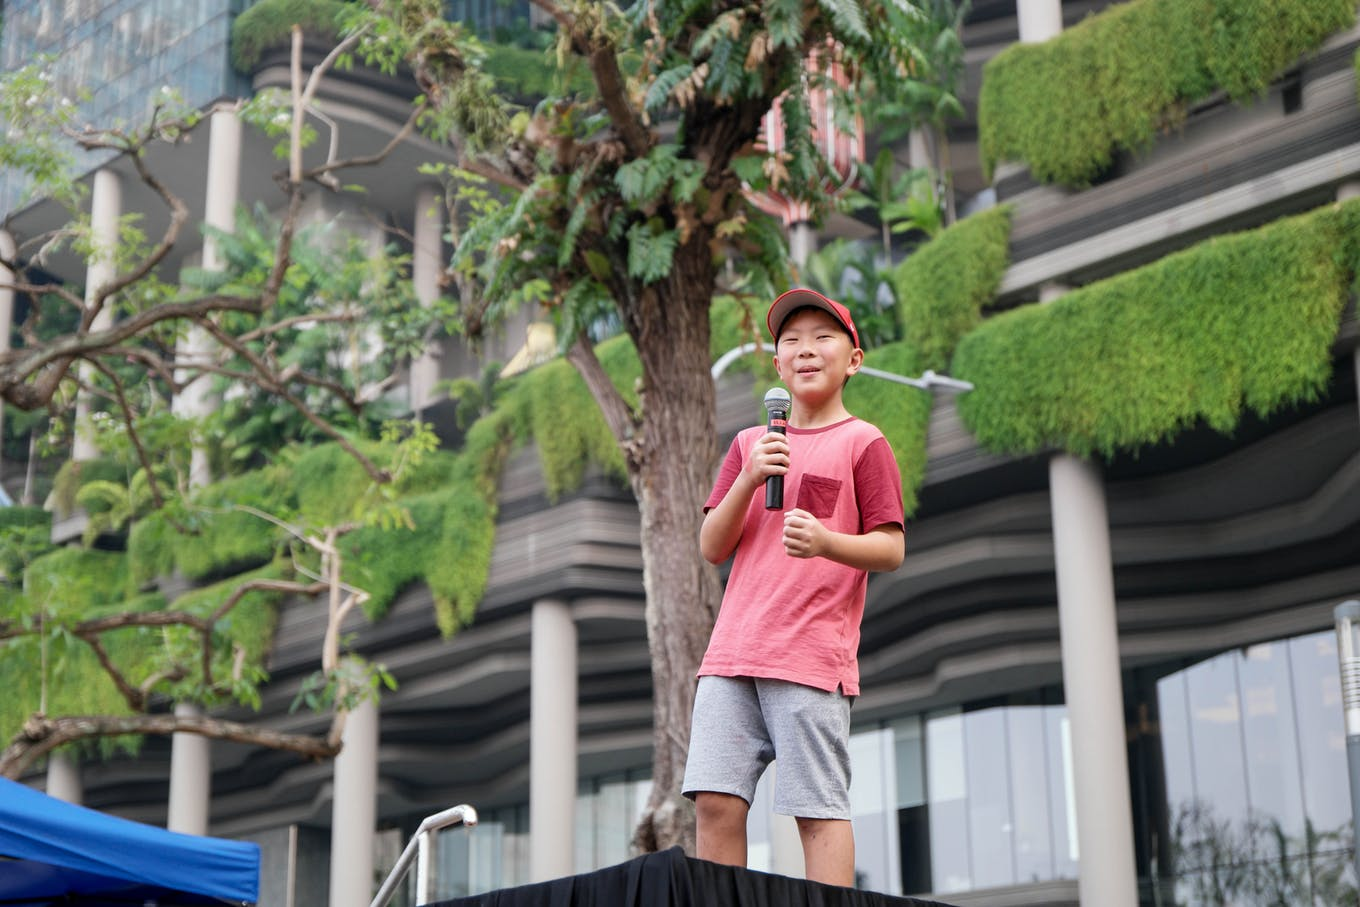 11 year-old Oliver Chua speaking at SG Climate Rally